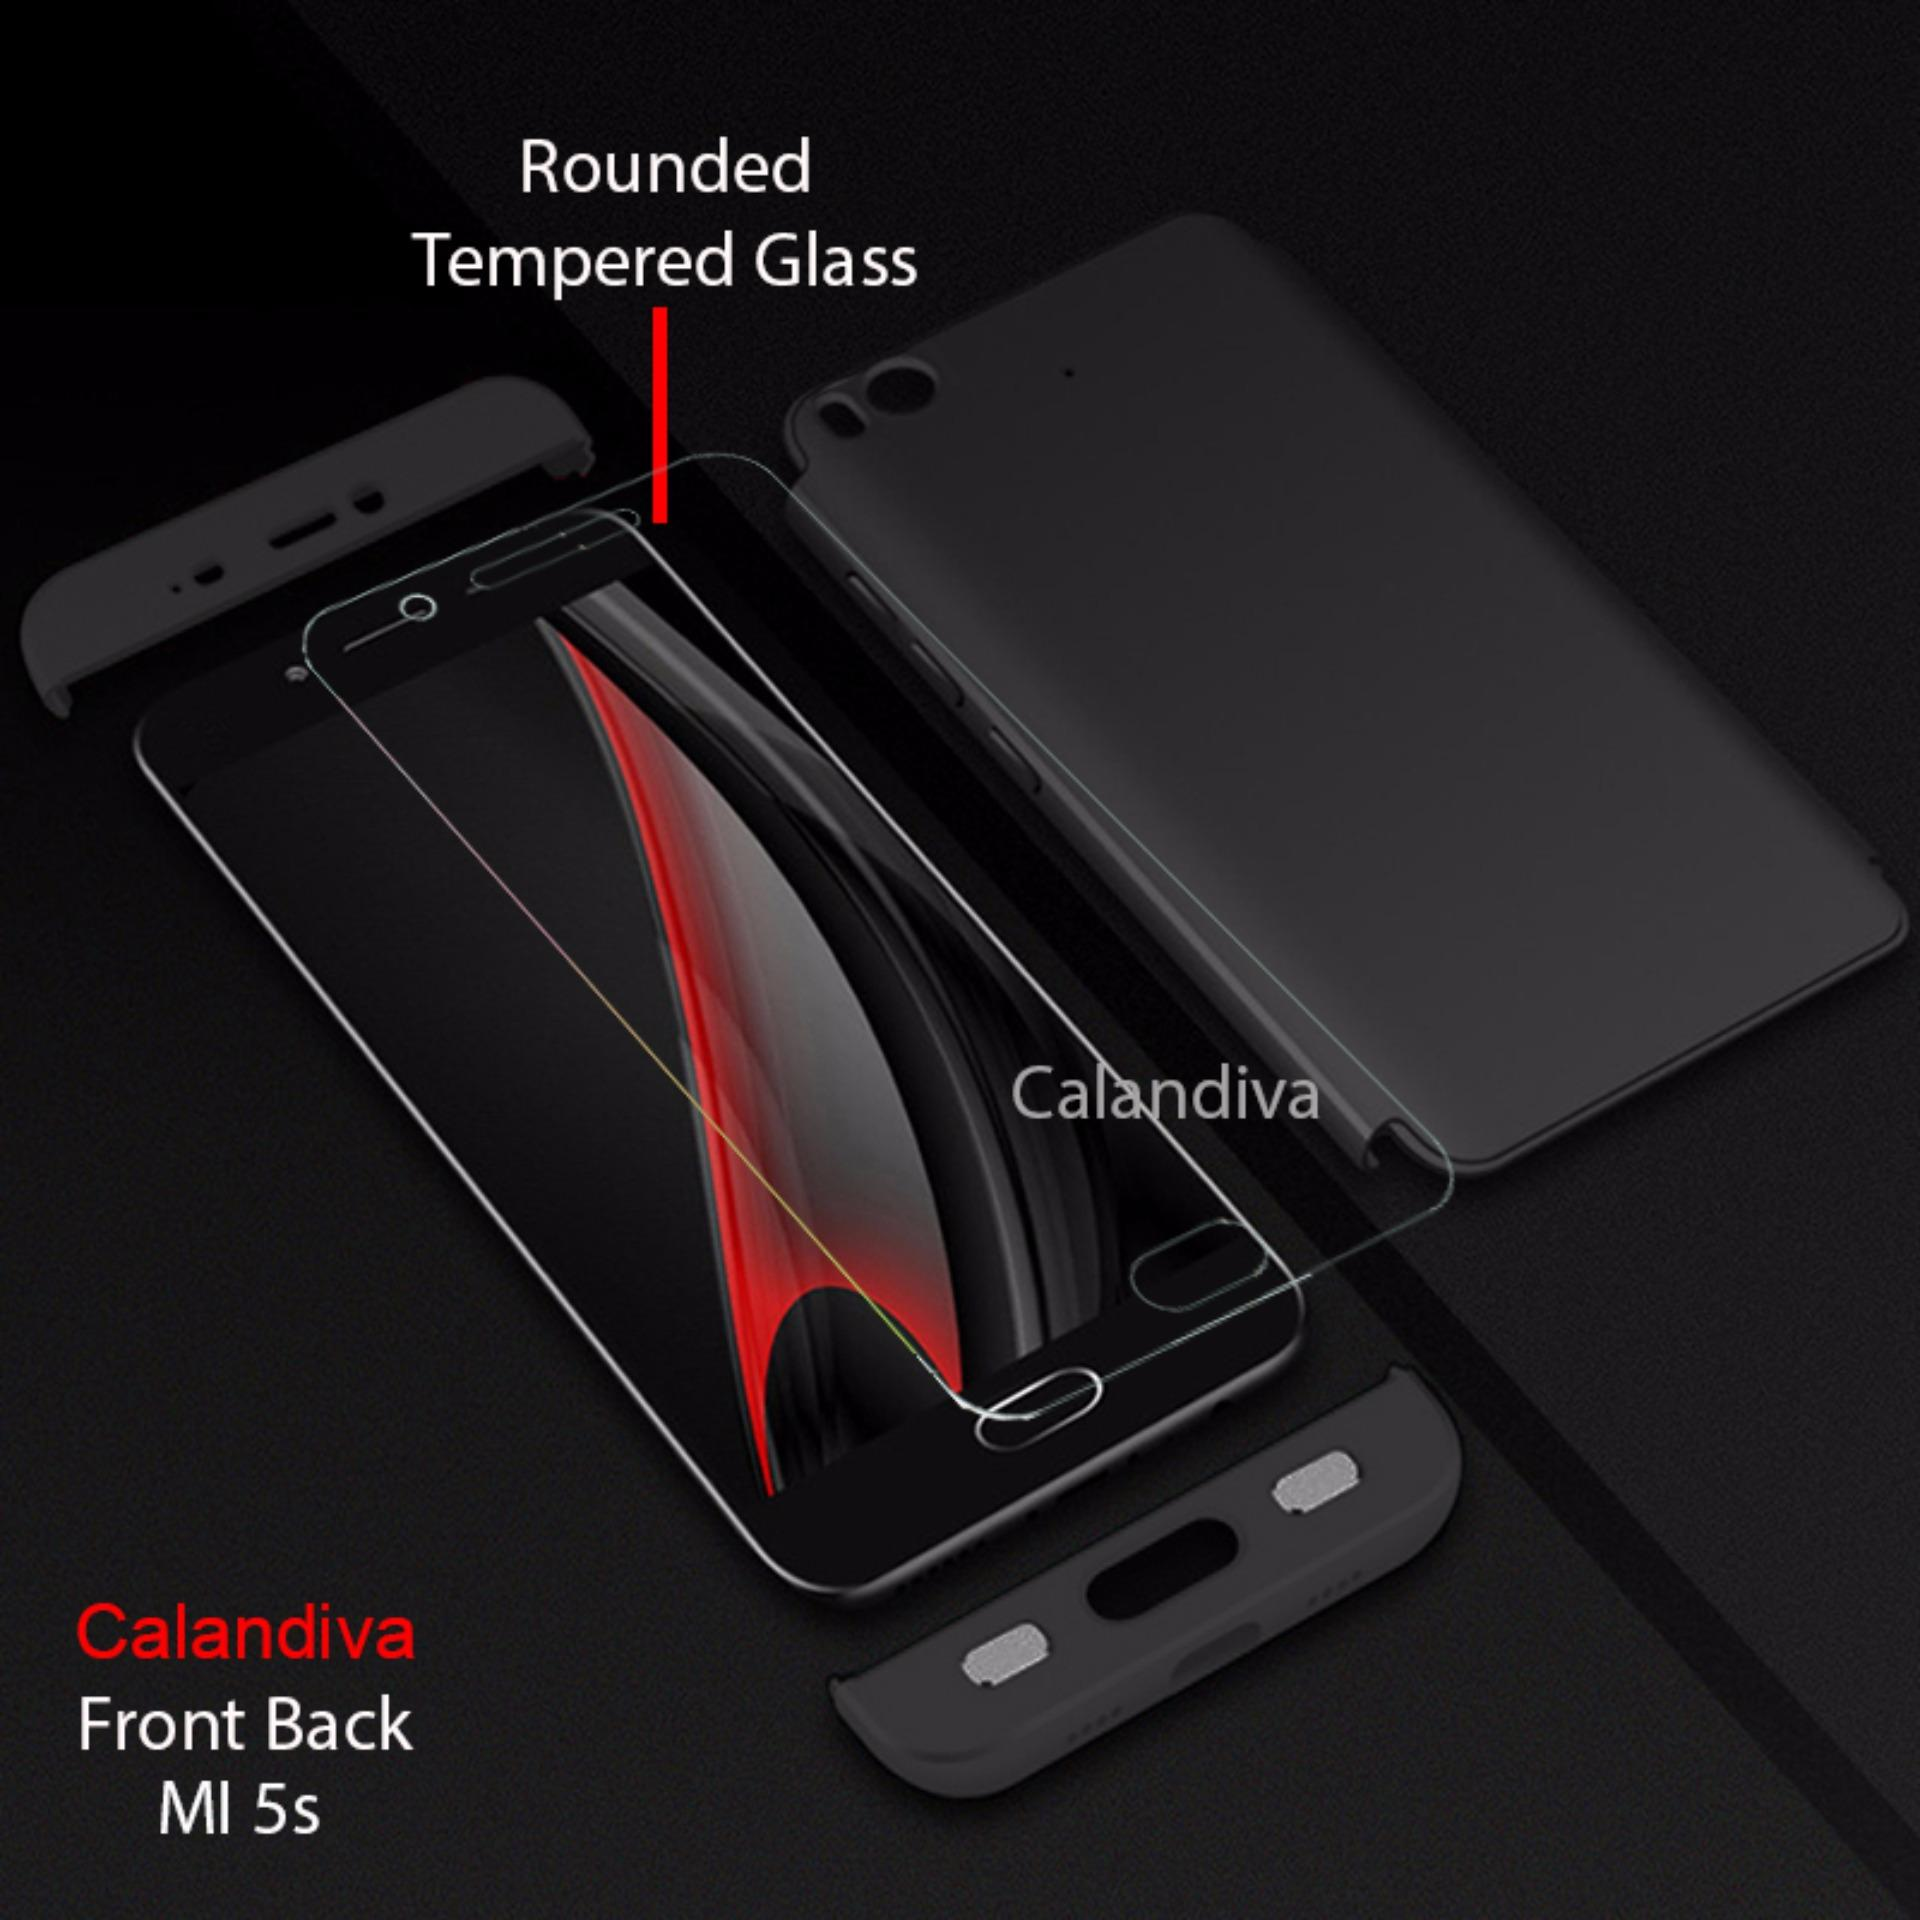 Calandiva Shockproof Hybrid Case For Xiaomi Mi 4 Mi 4w 5 0 Inch Source · Calandiva Premium Front Back 360 Degree Full Protection Case for Xiaomi Mi 5s